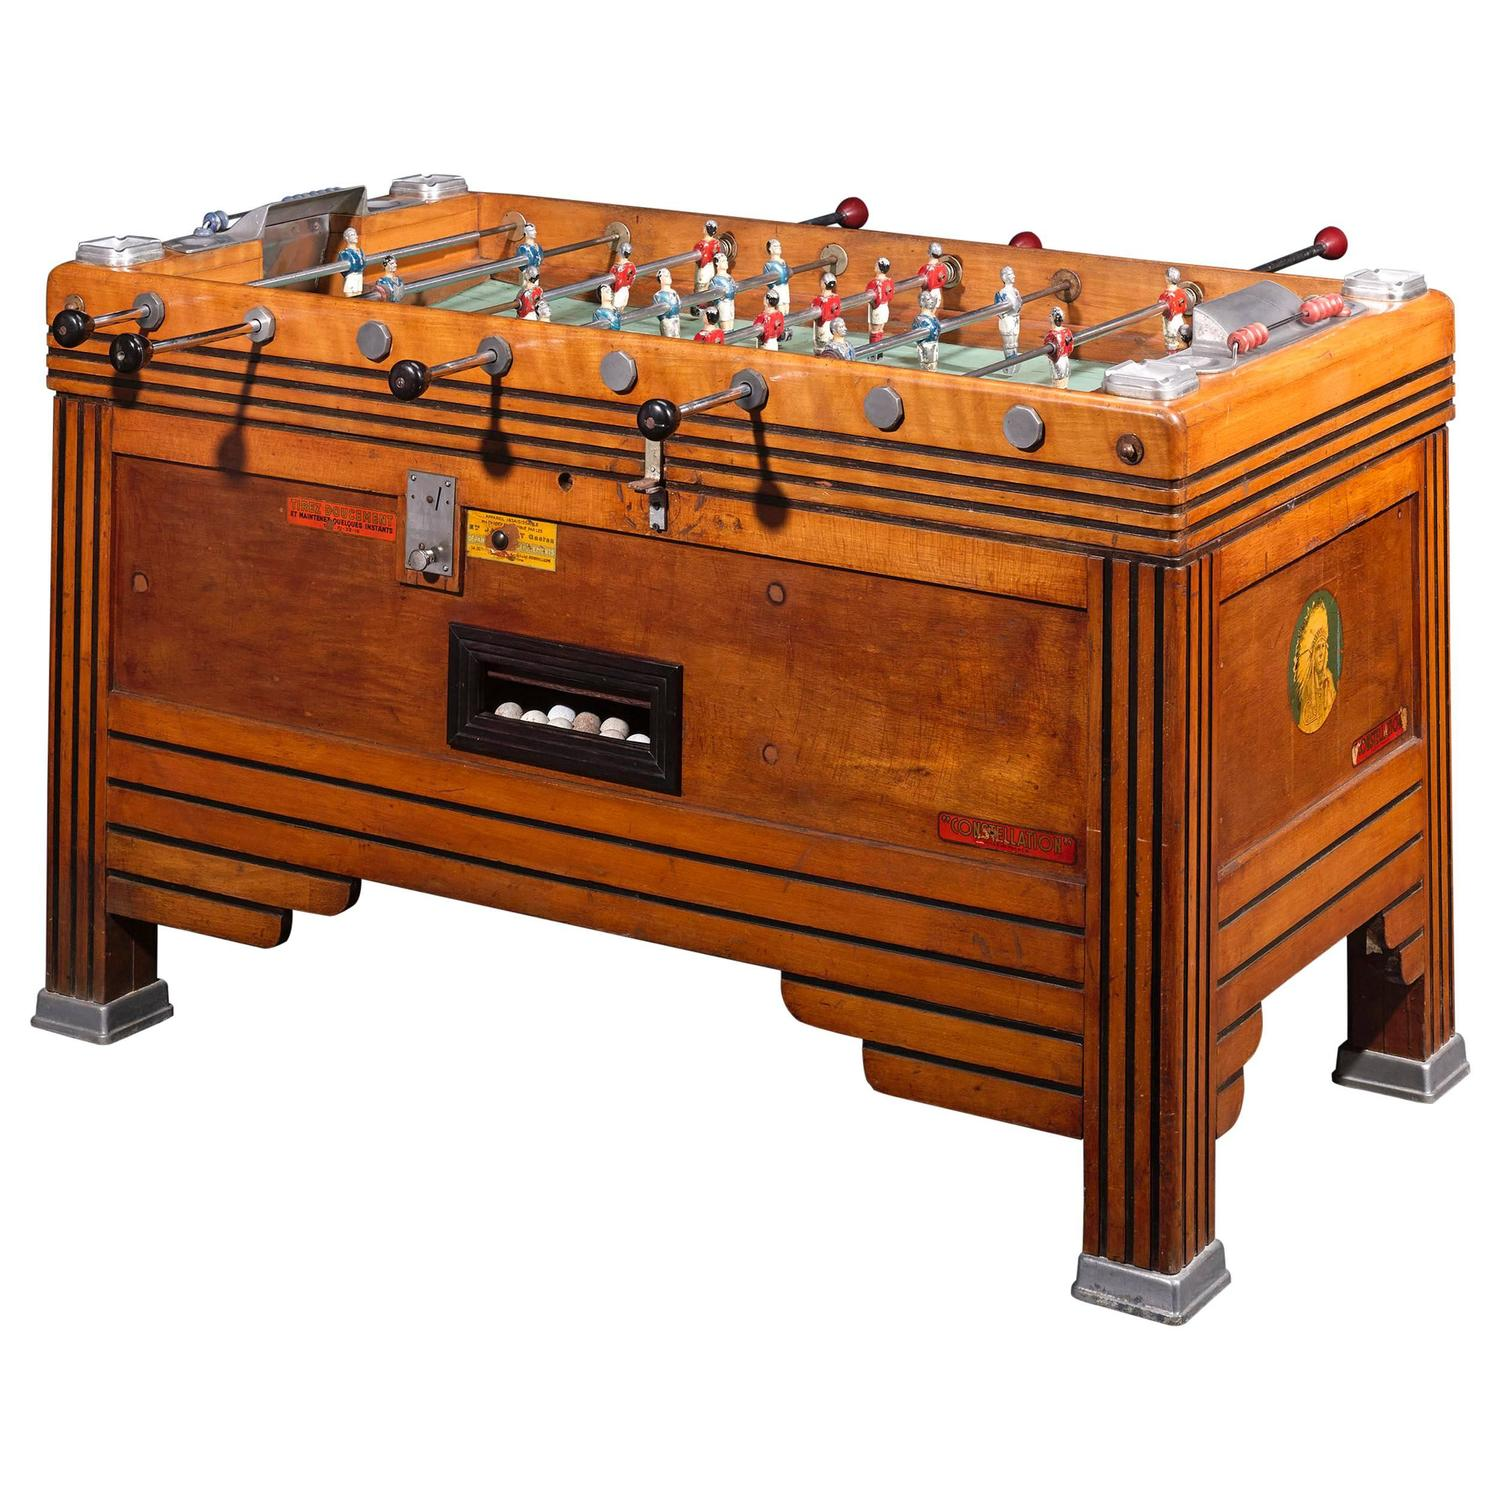 Vintage French Foosball Game Table at 1stdibs